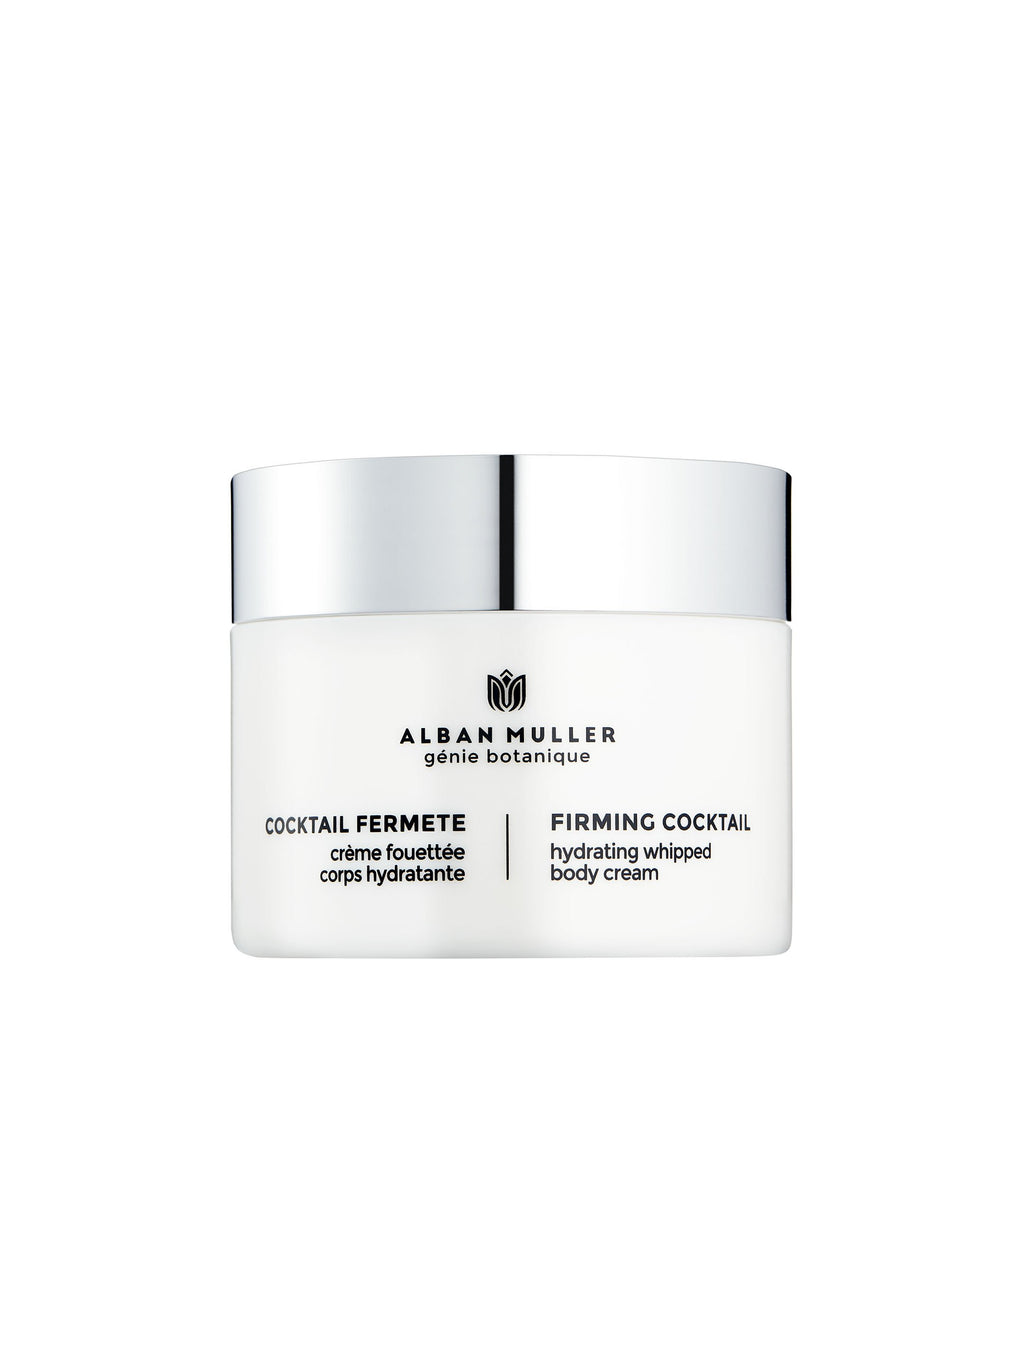 Firming Cocktail Hydrating Whipped Body Cream